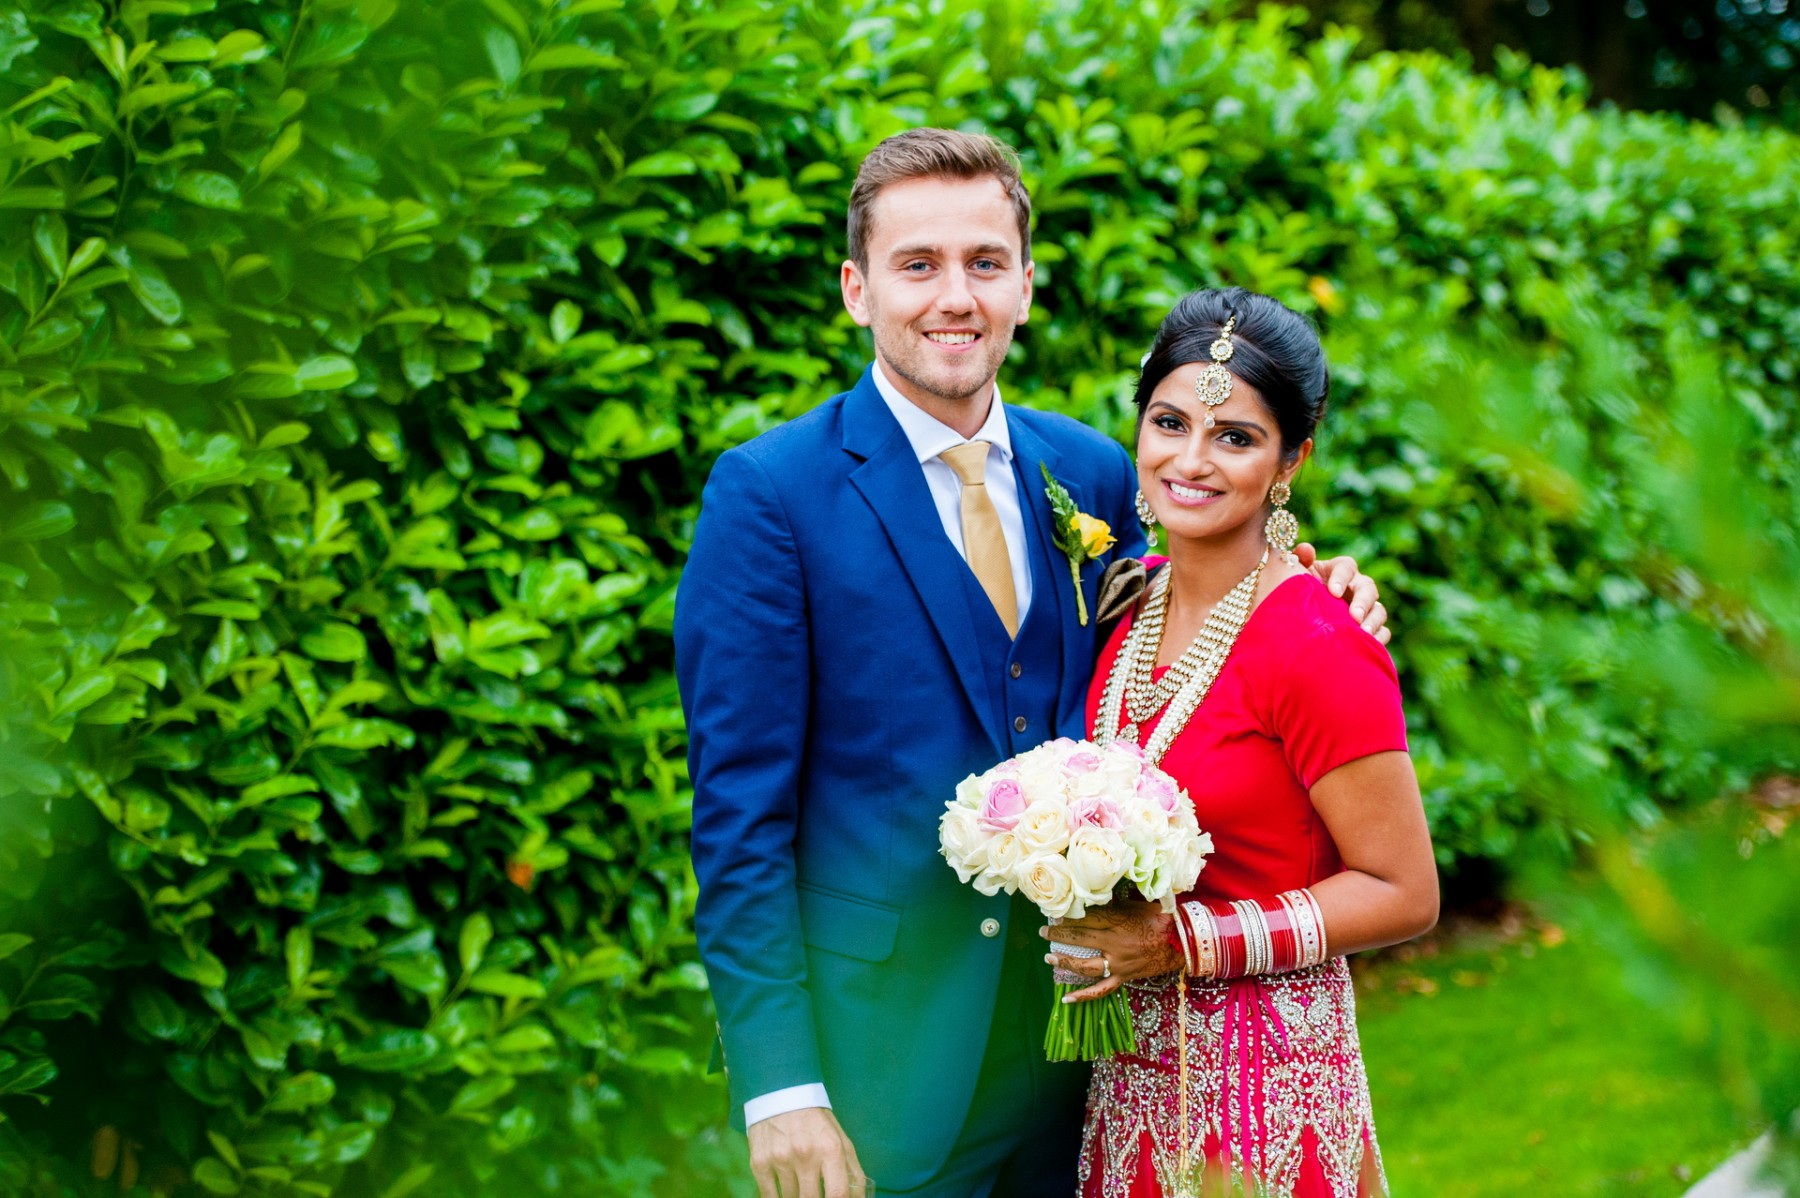 Nottingham wedding photographers